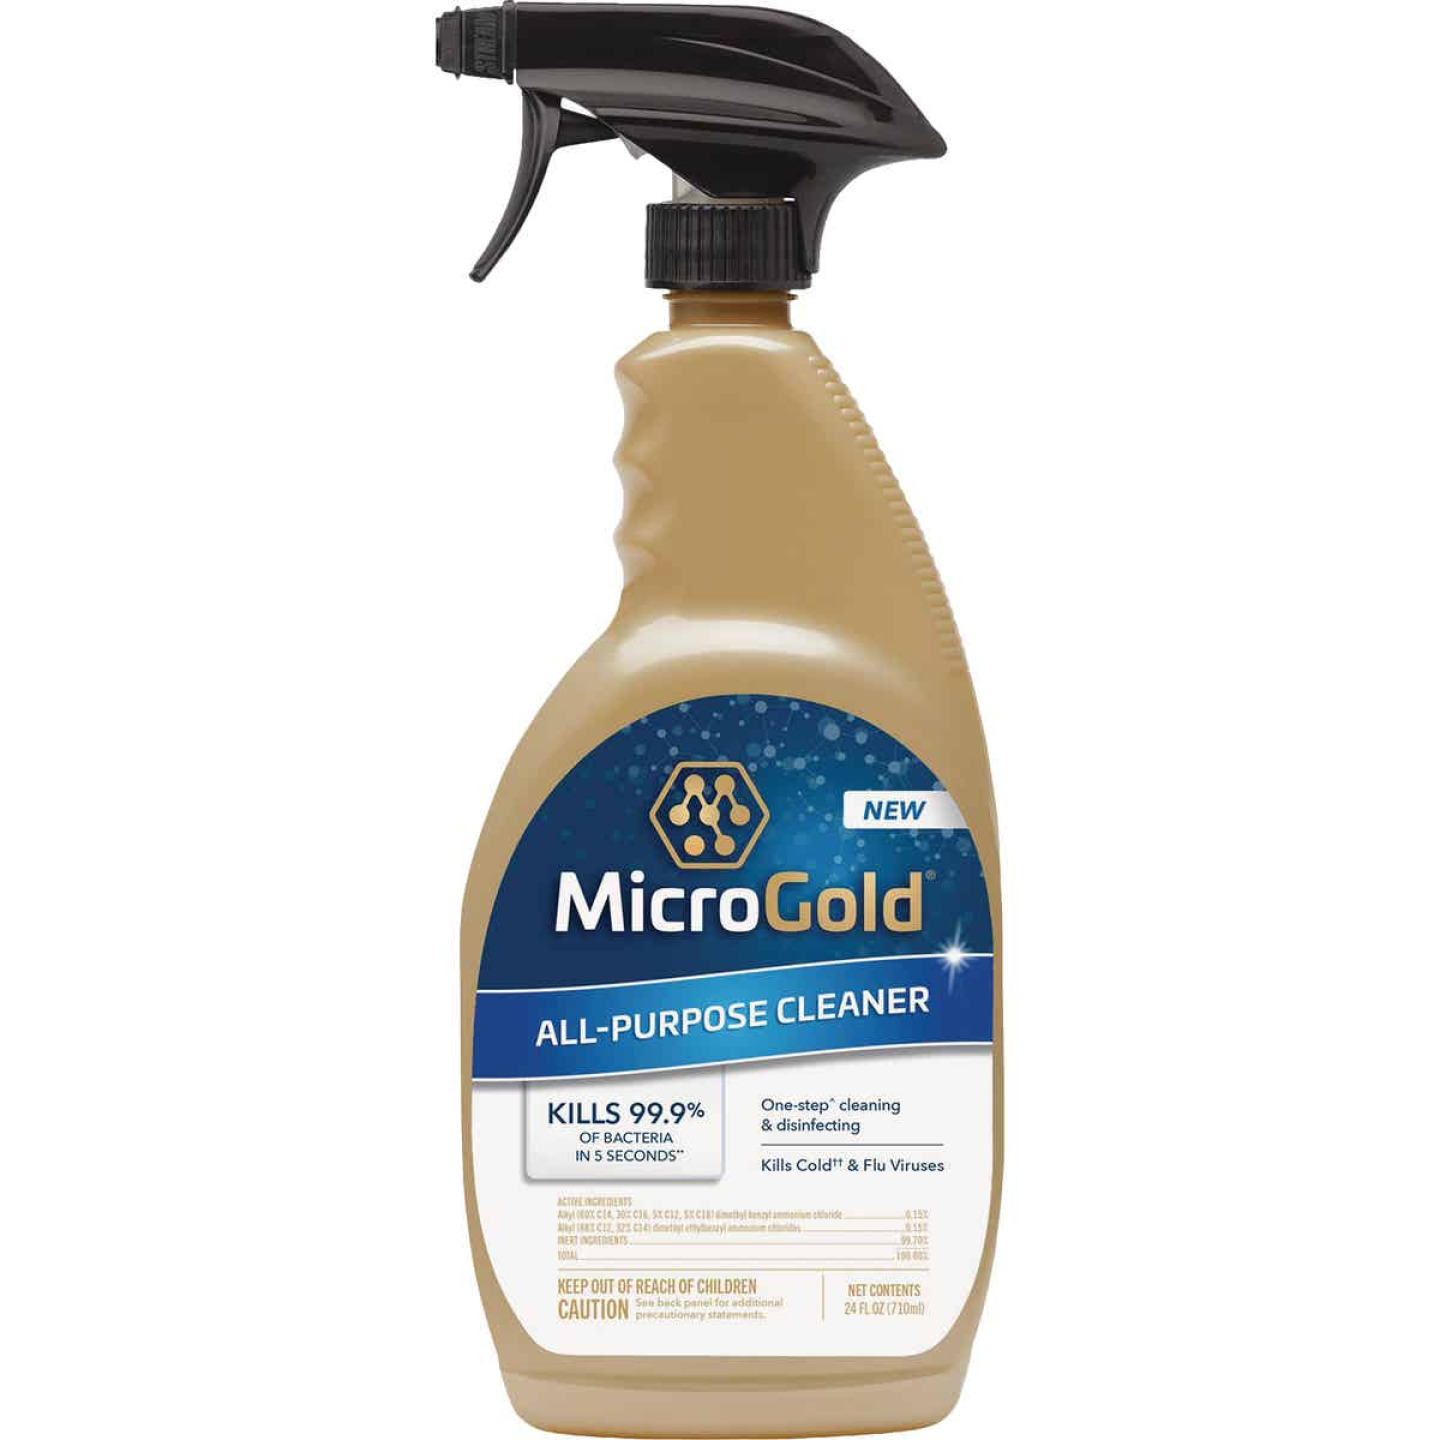 MicroGold 24 Oz. All-Purpose Cleaner & Disinfectant Spray Image 1